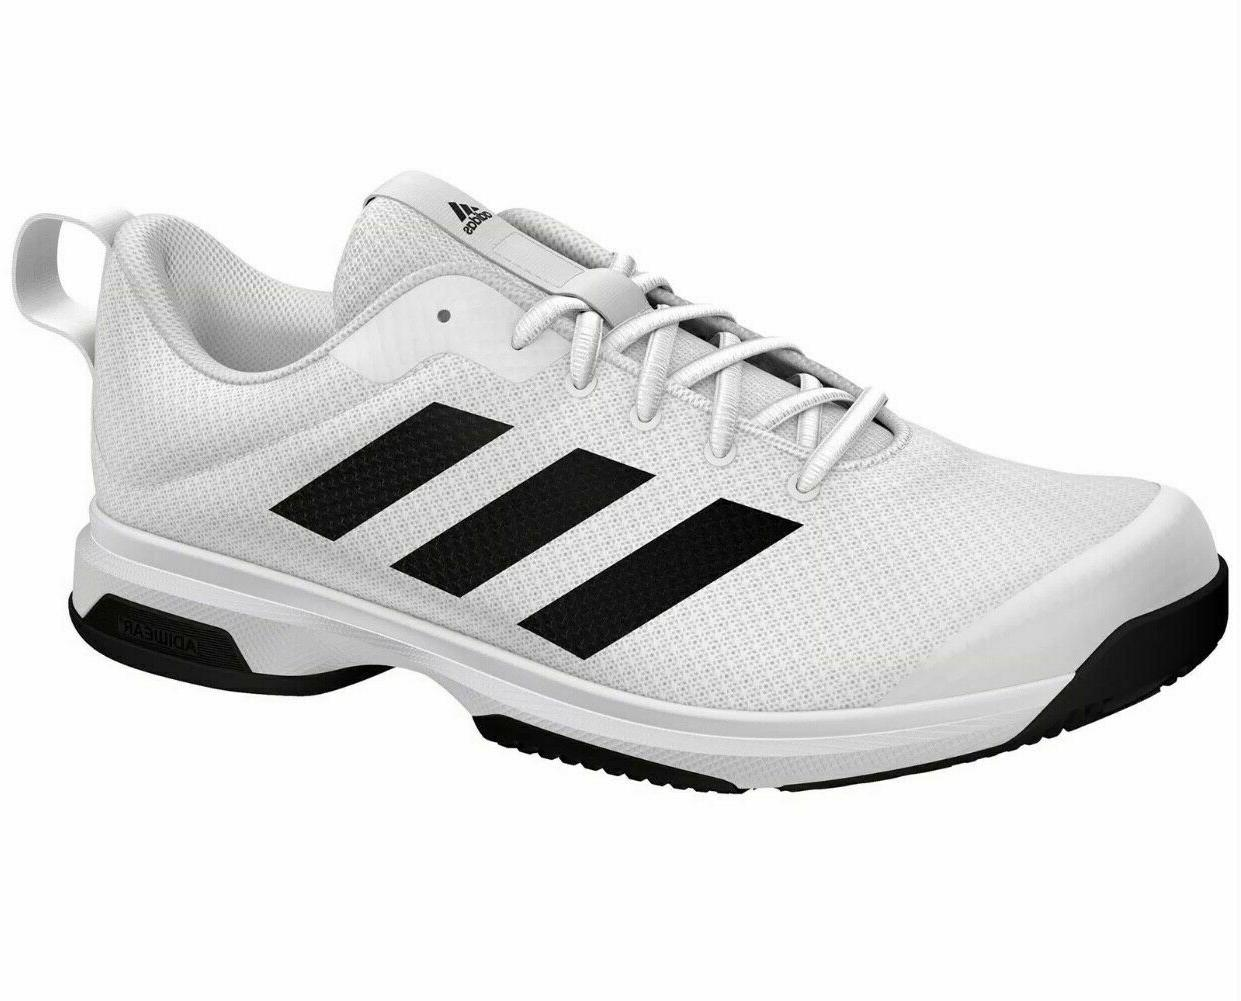 NEW Adidas Tennis Shoes Game Sneaker FX3651